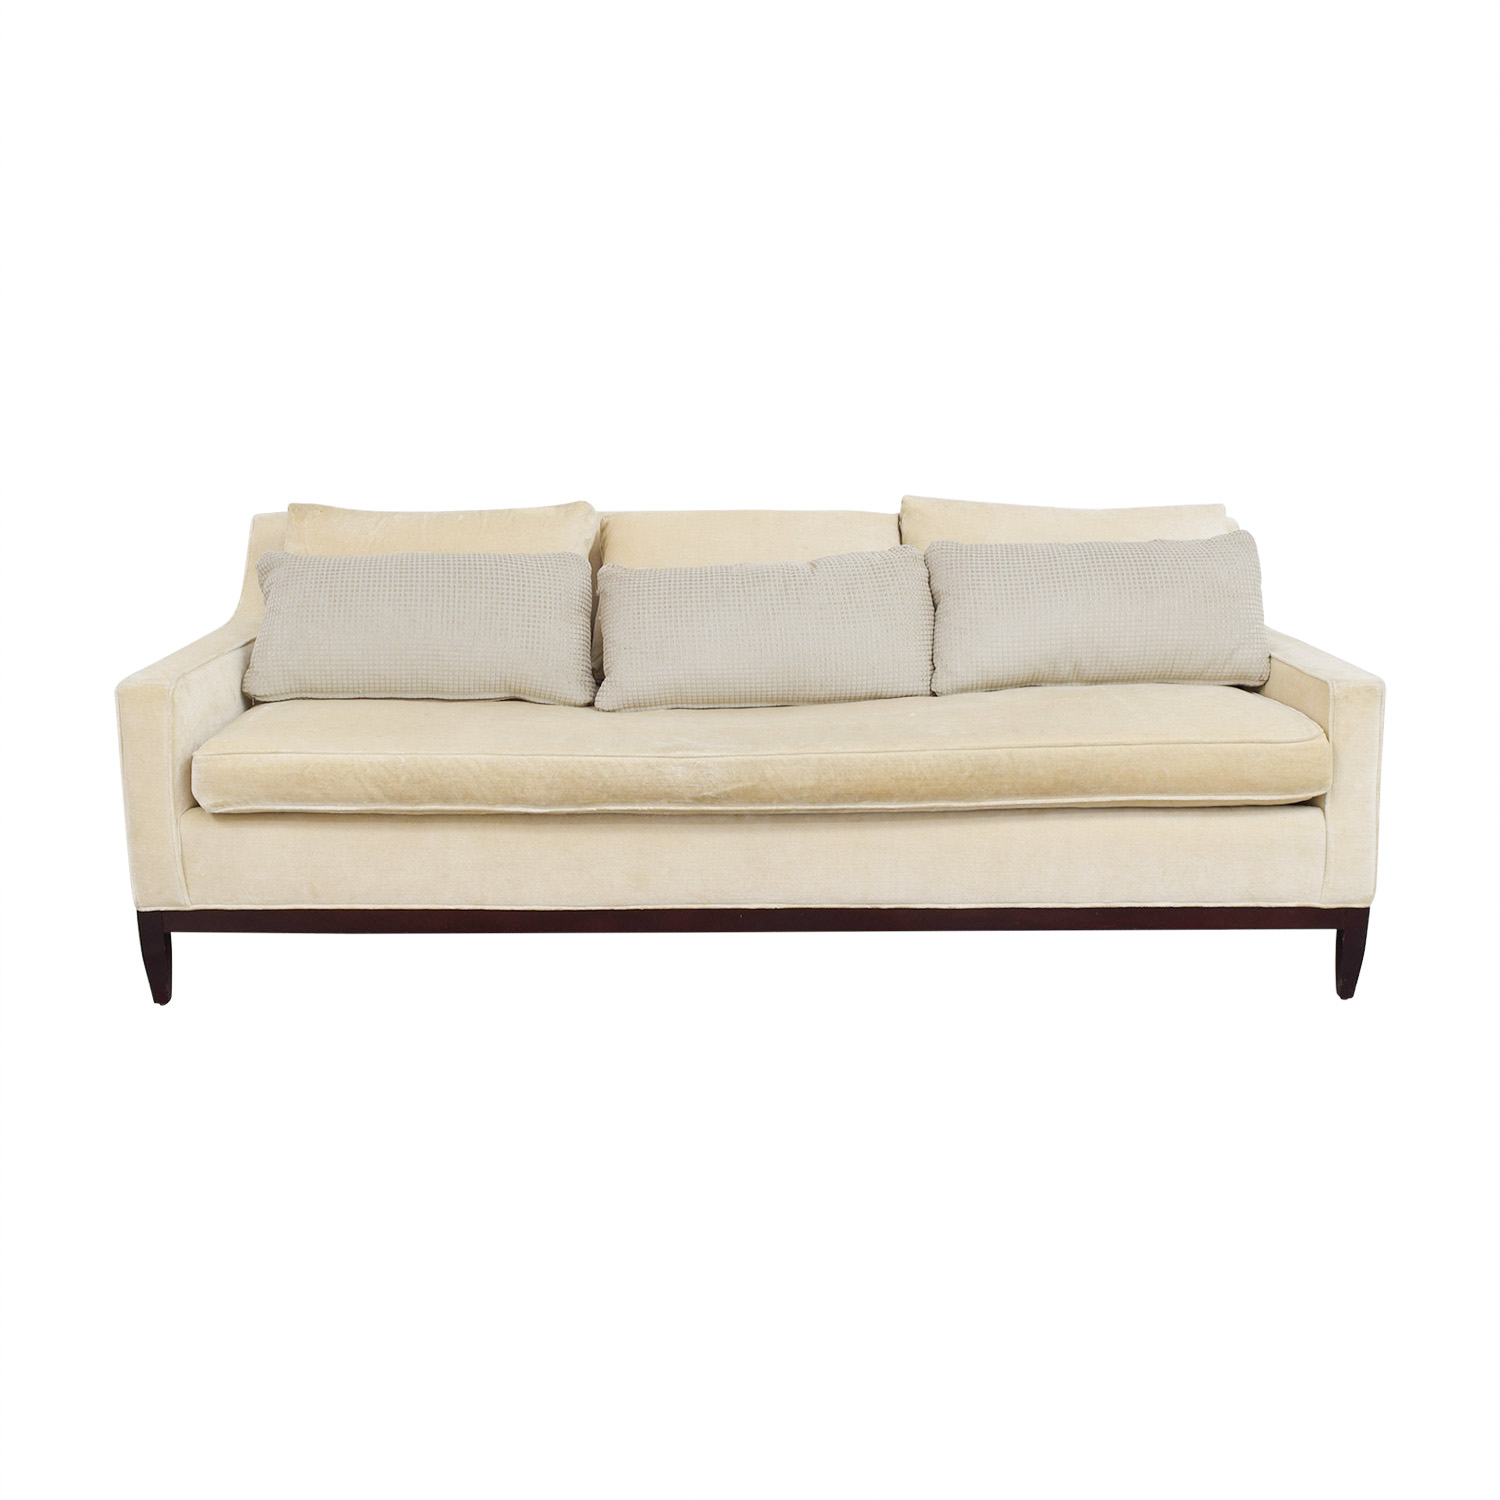 Sofa For Sale Online 63 Off Custom Single Cushion Beige Couch Sofas